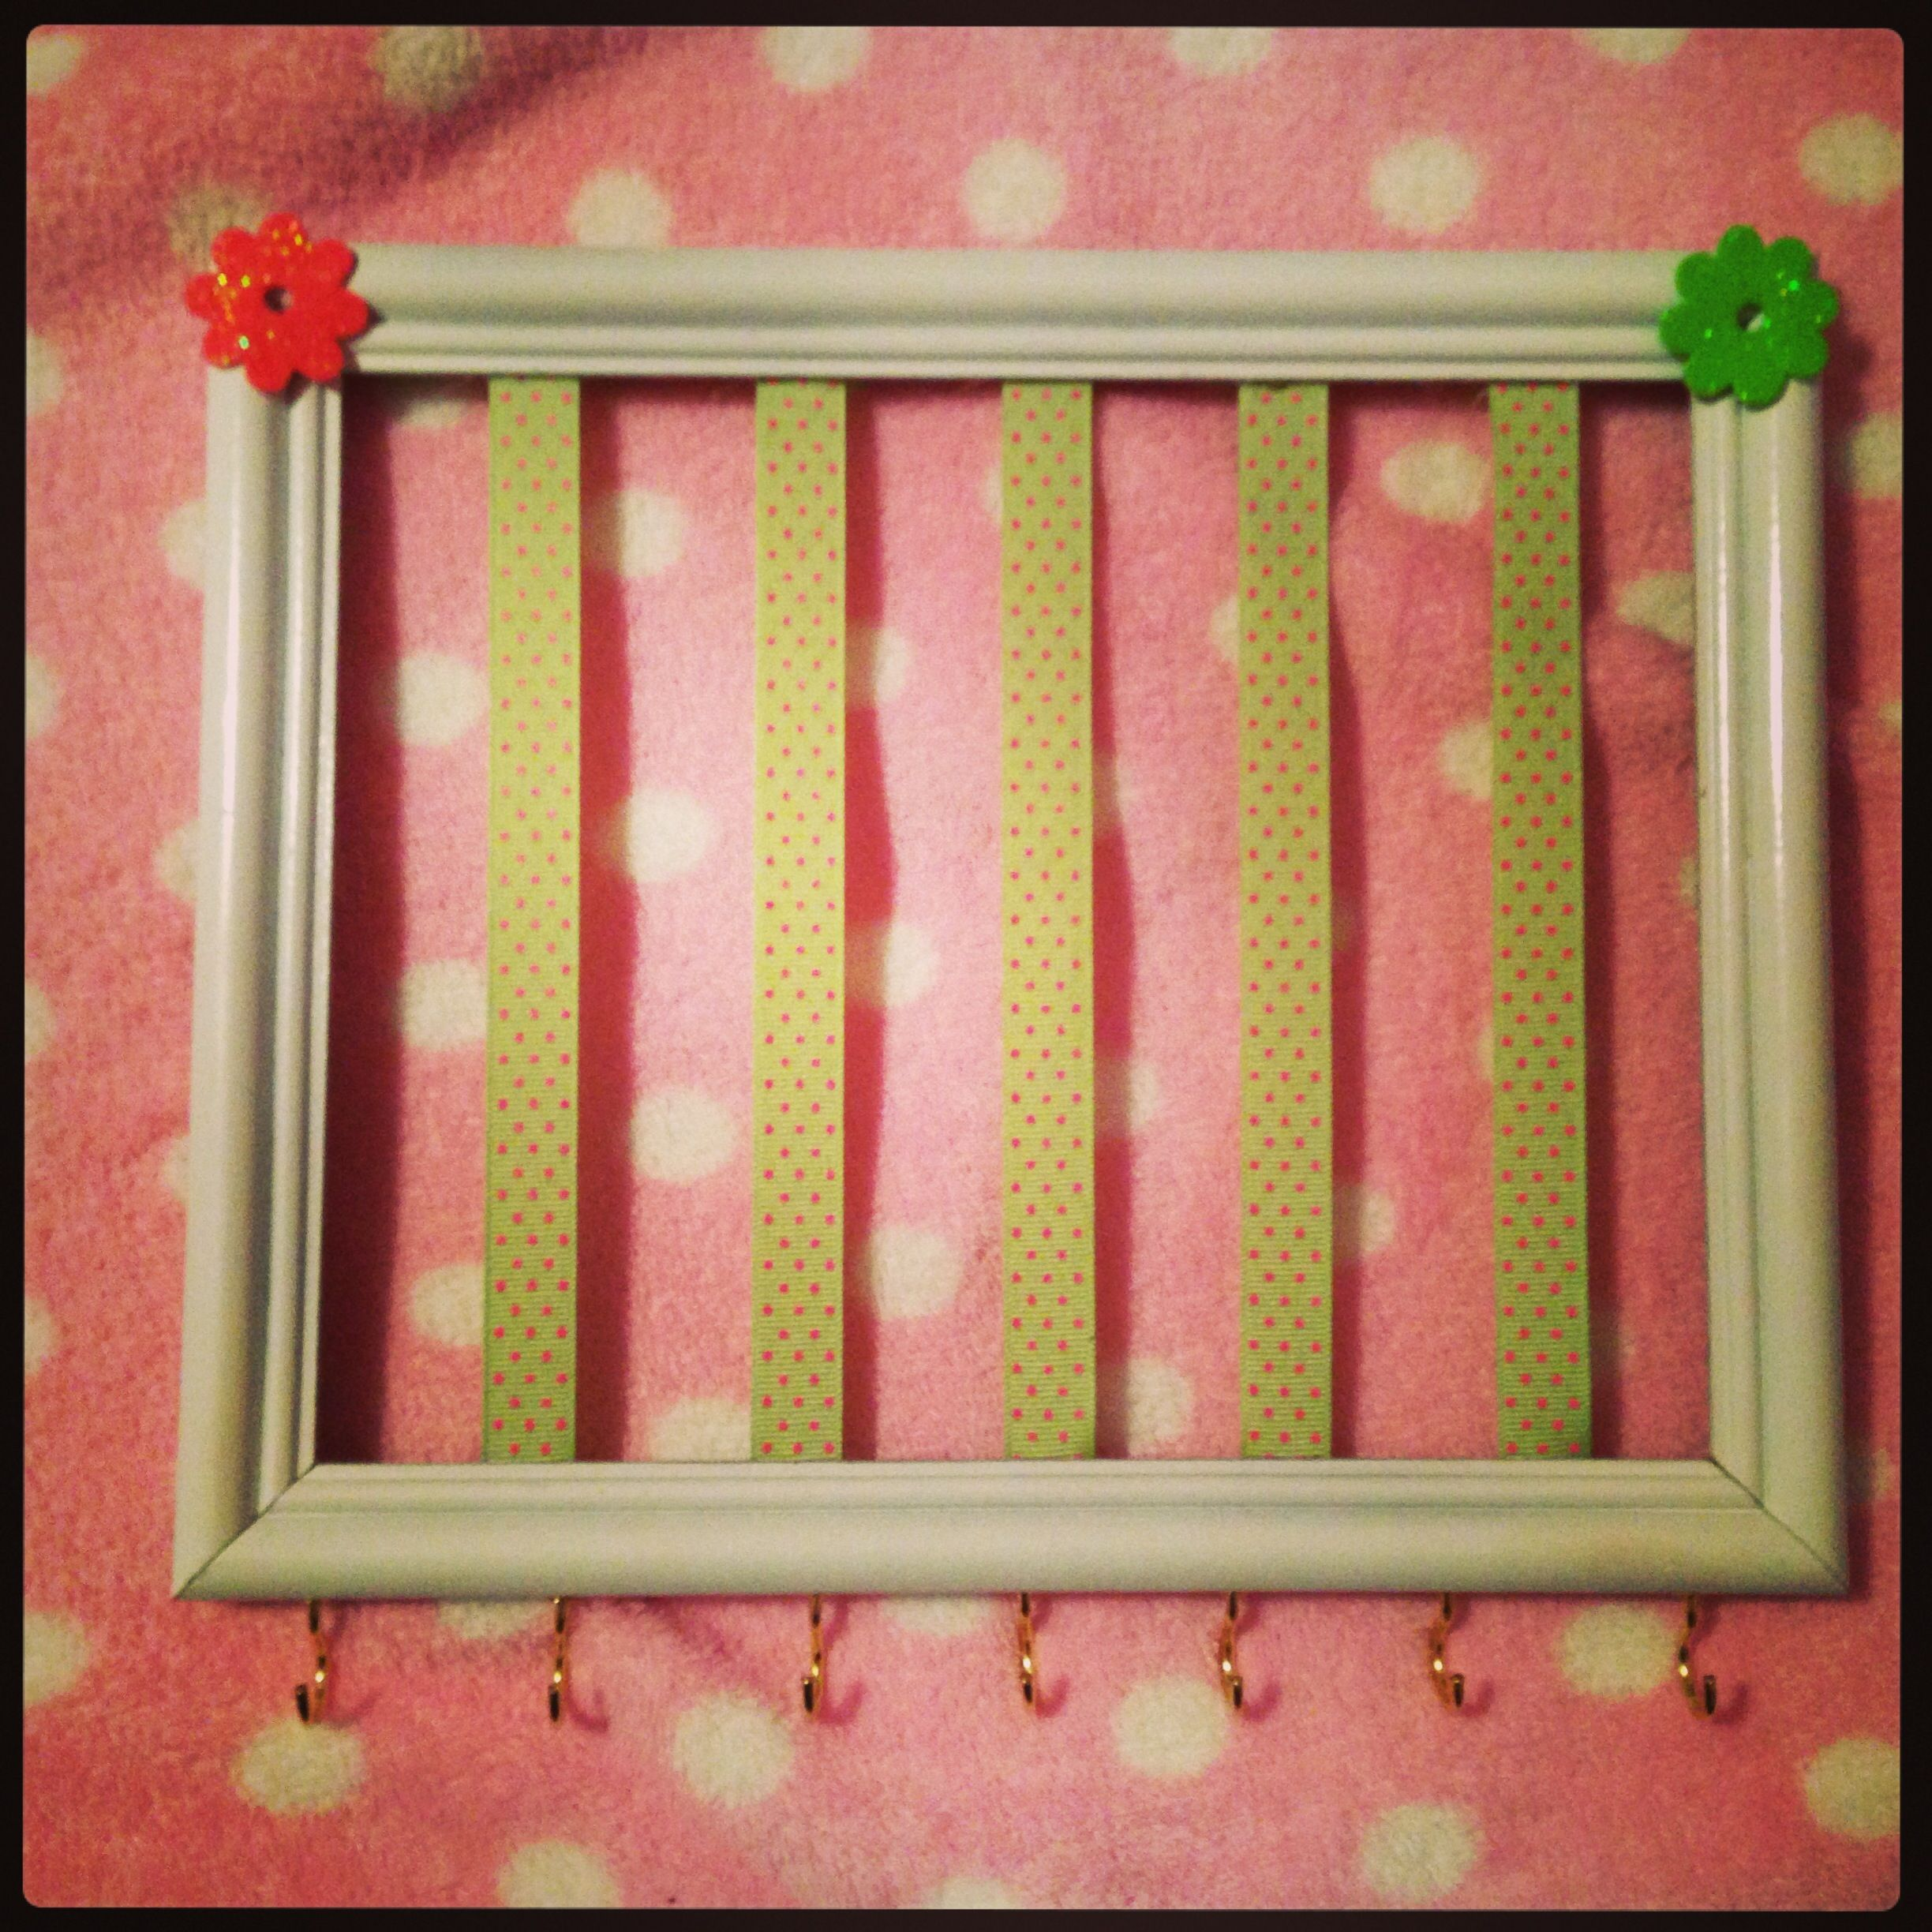 Hair bow caddy crafts pinterest hair bow and craft